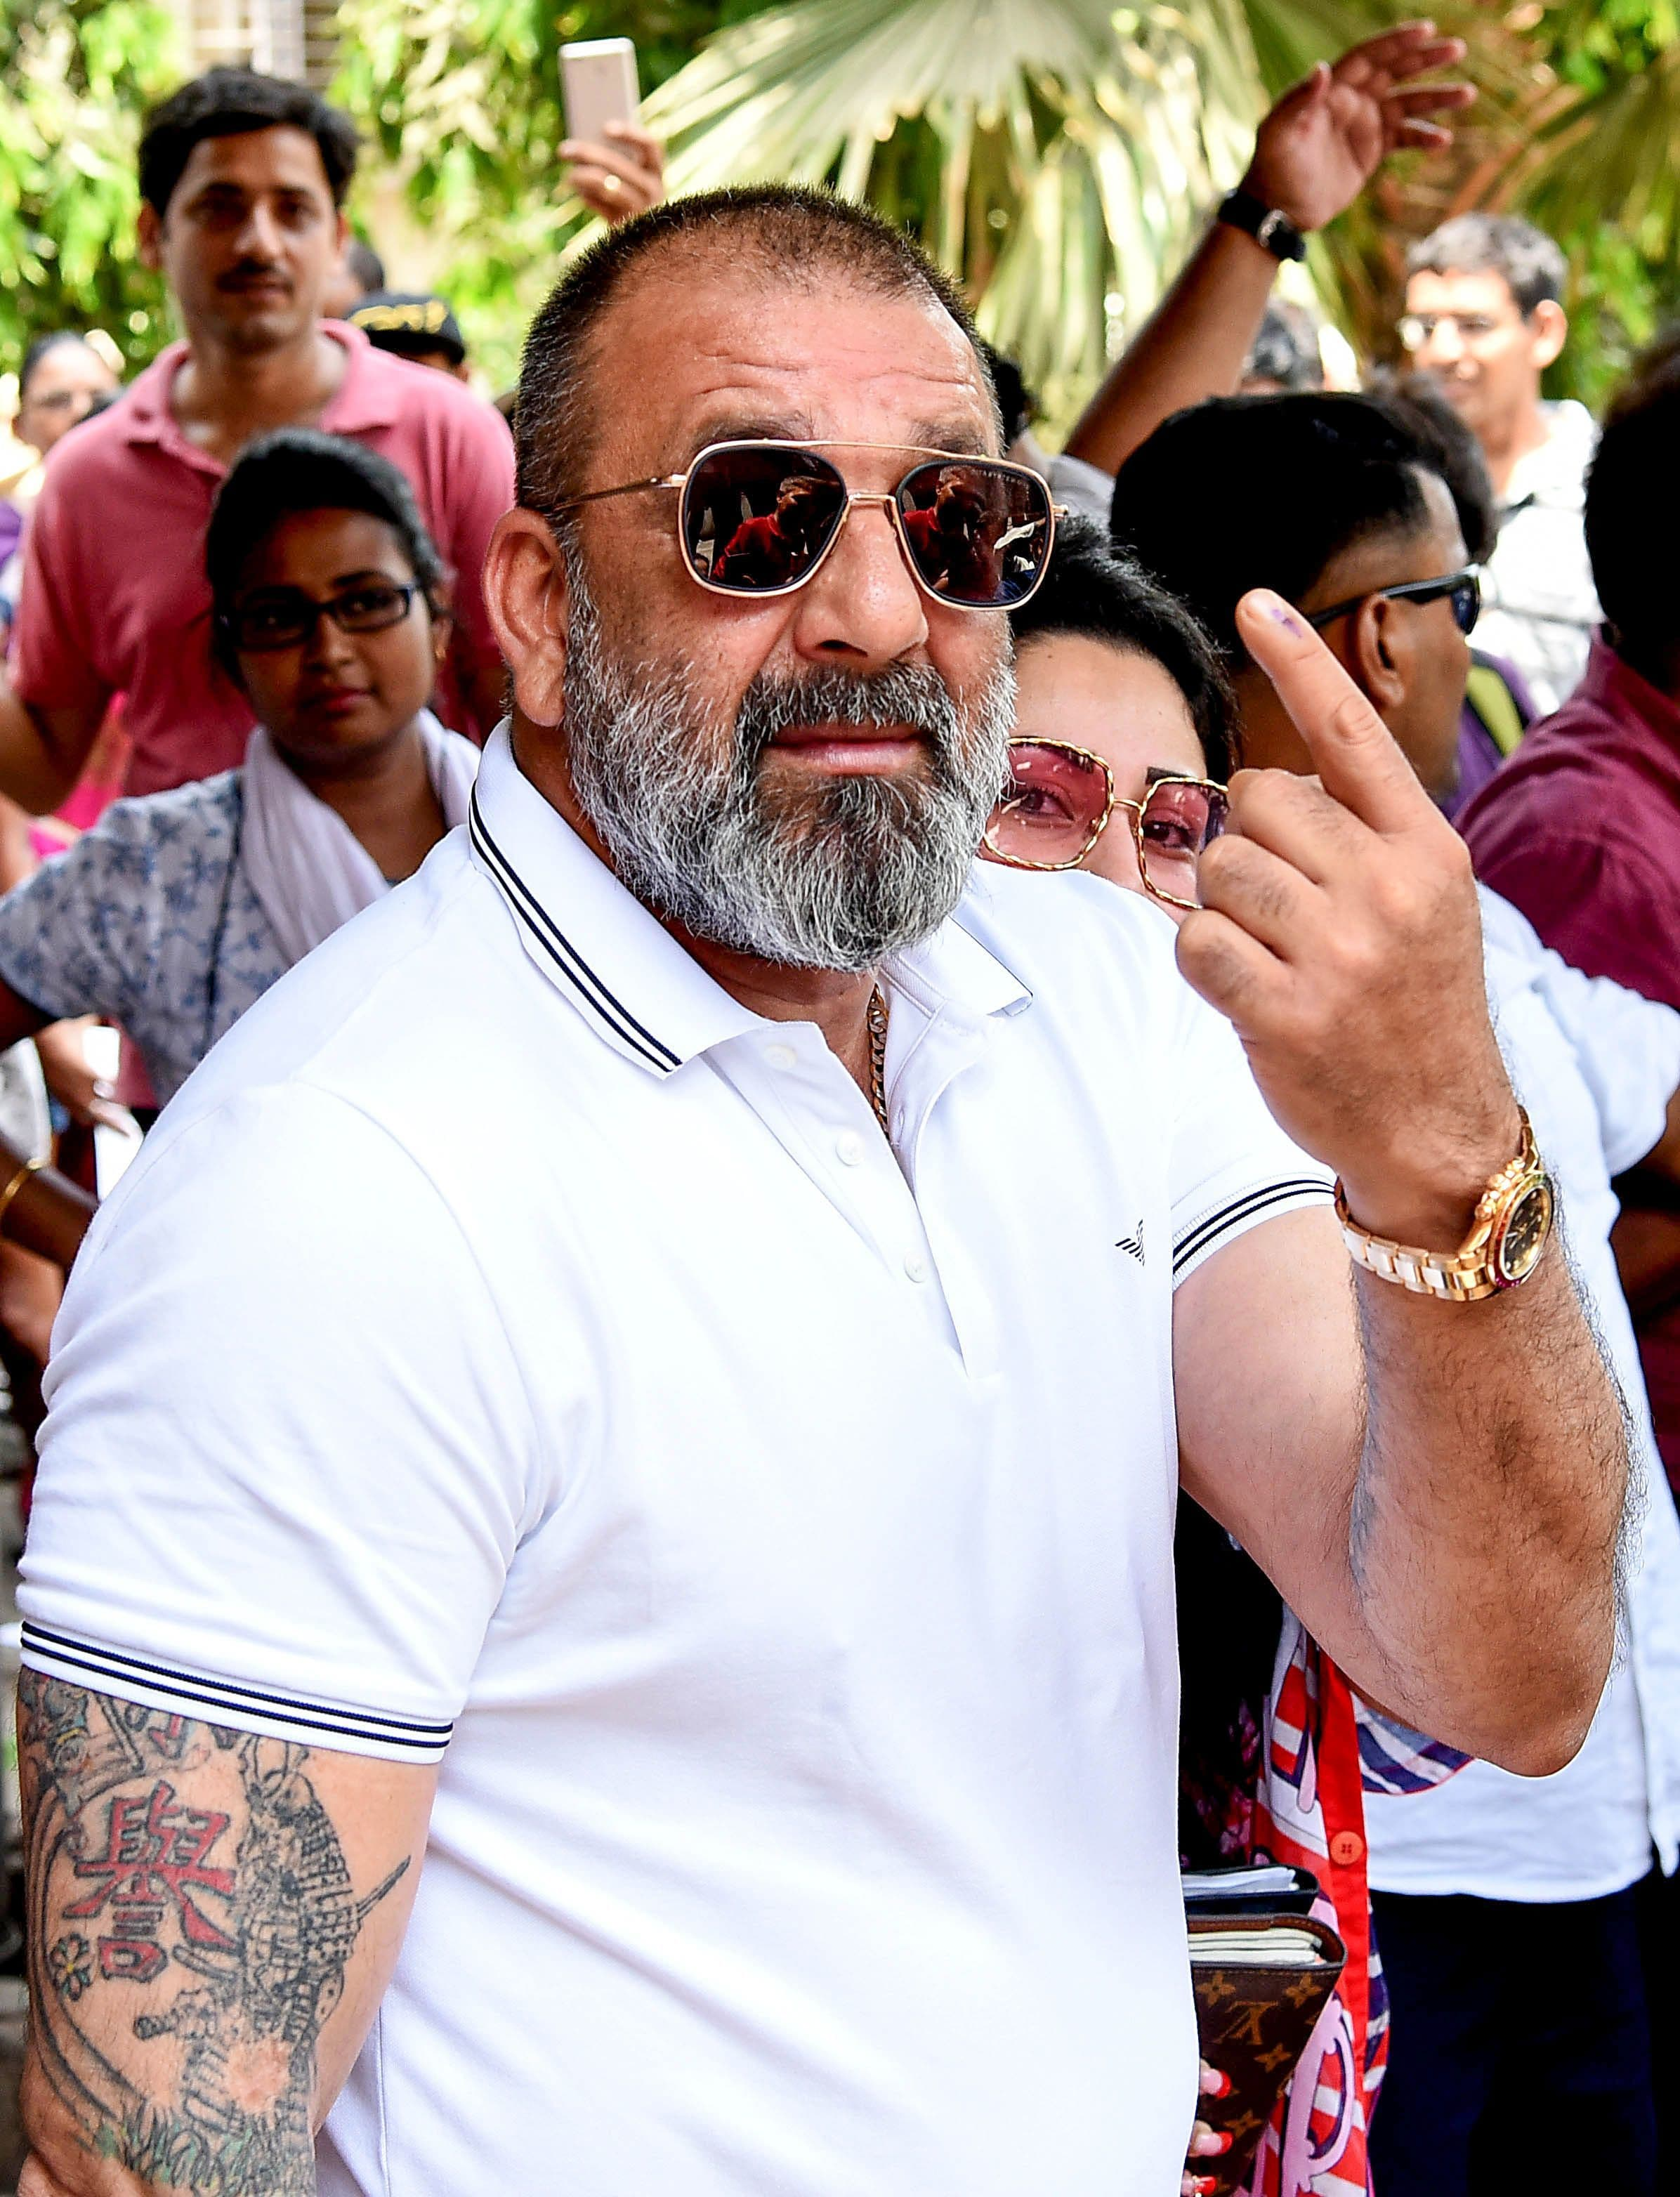 Bollywood actor Sanjay Dutt poses for photographs after casting his vote at a polling station in Mumbai on April 29, 2019. — AFP